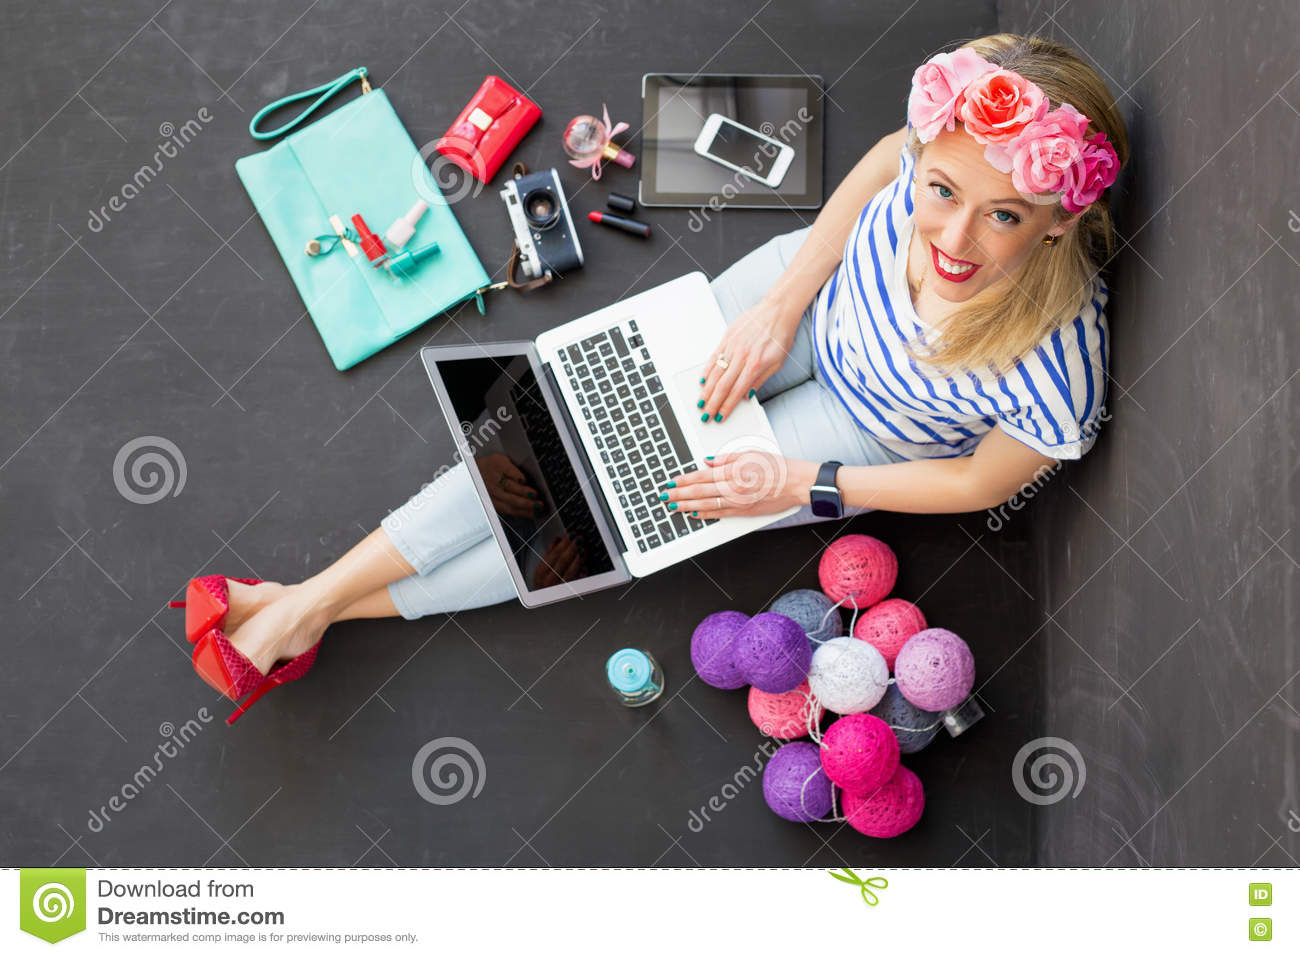 Fashion blogger with computer looking up